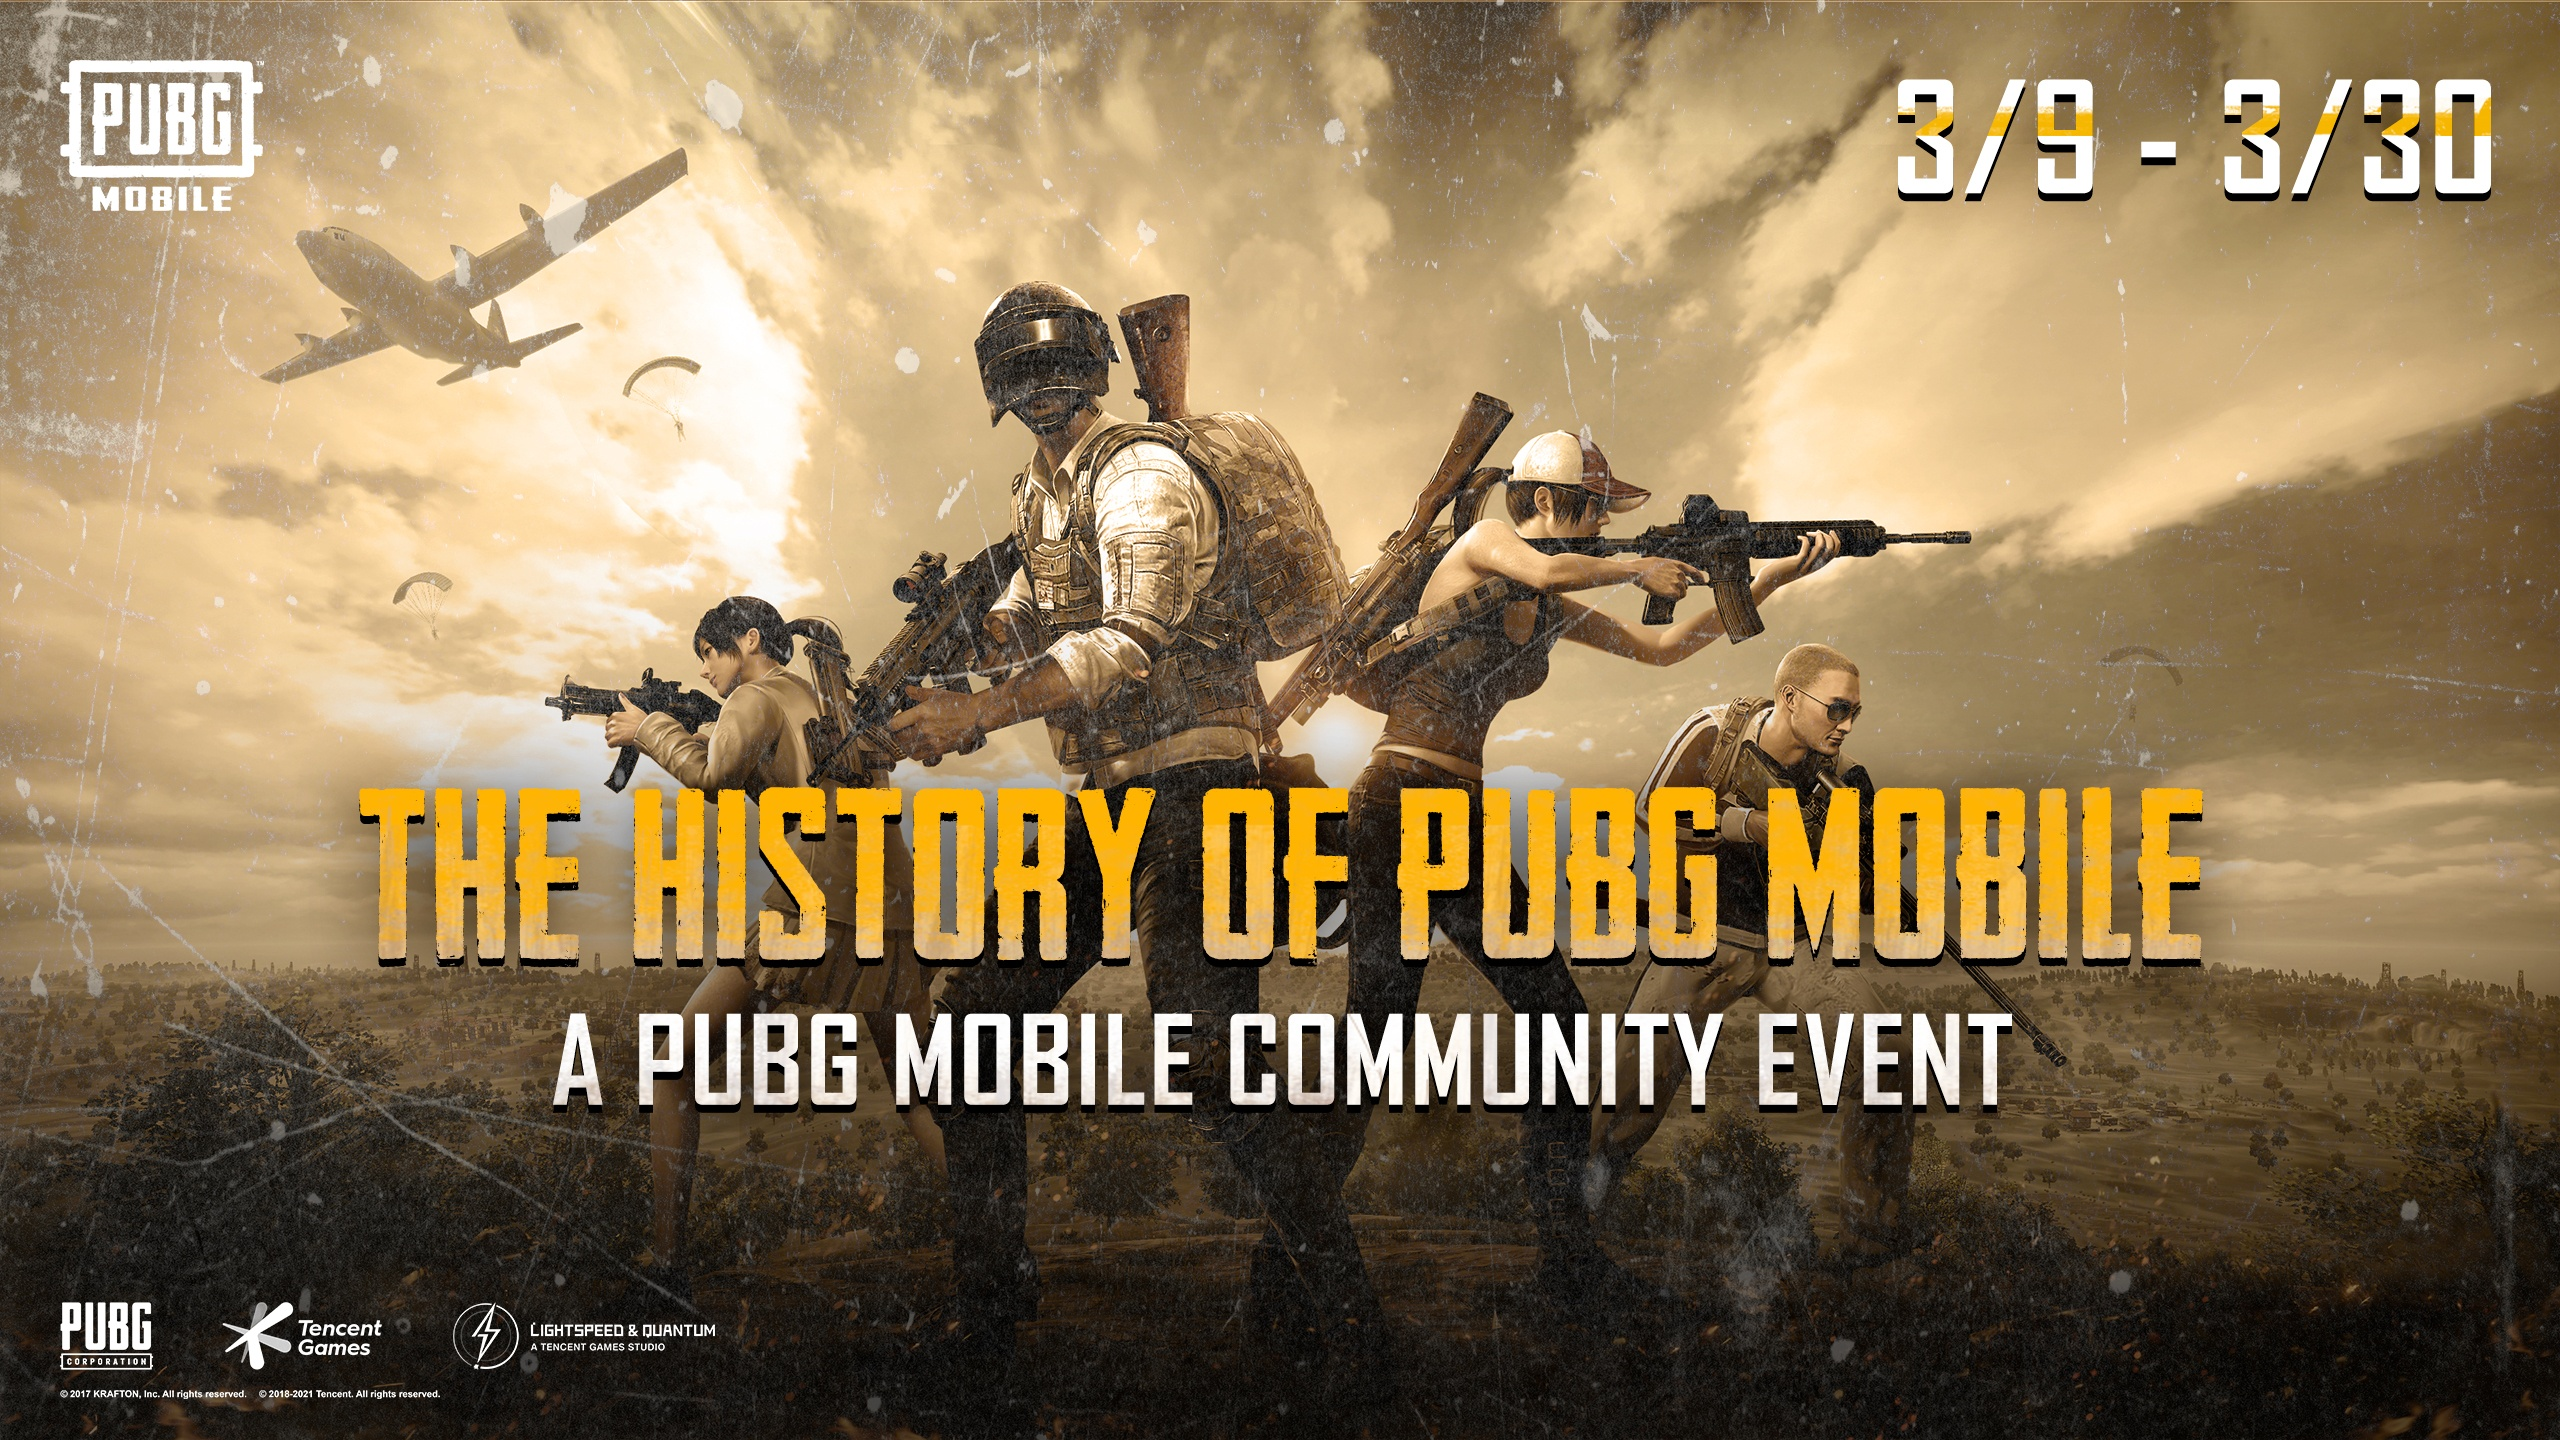 PUBG Mobile's Latest Patch V1.3 Set for March 9 Release